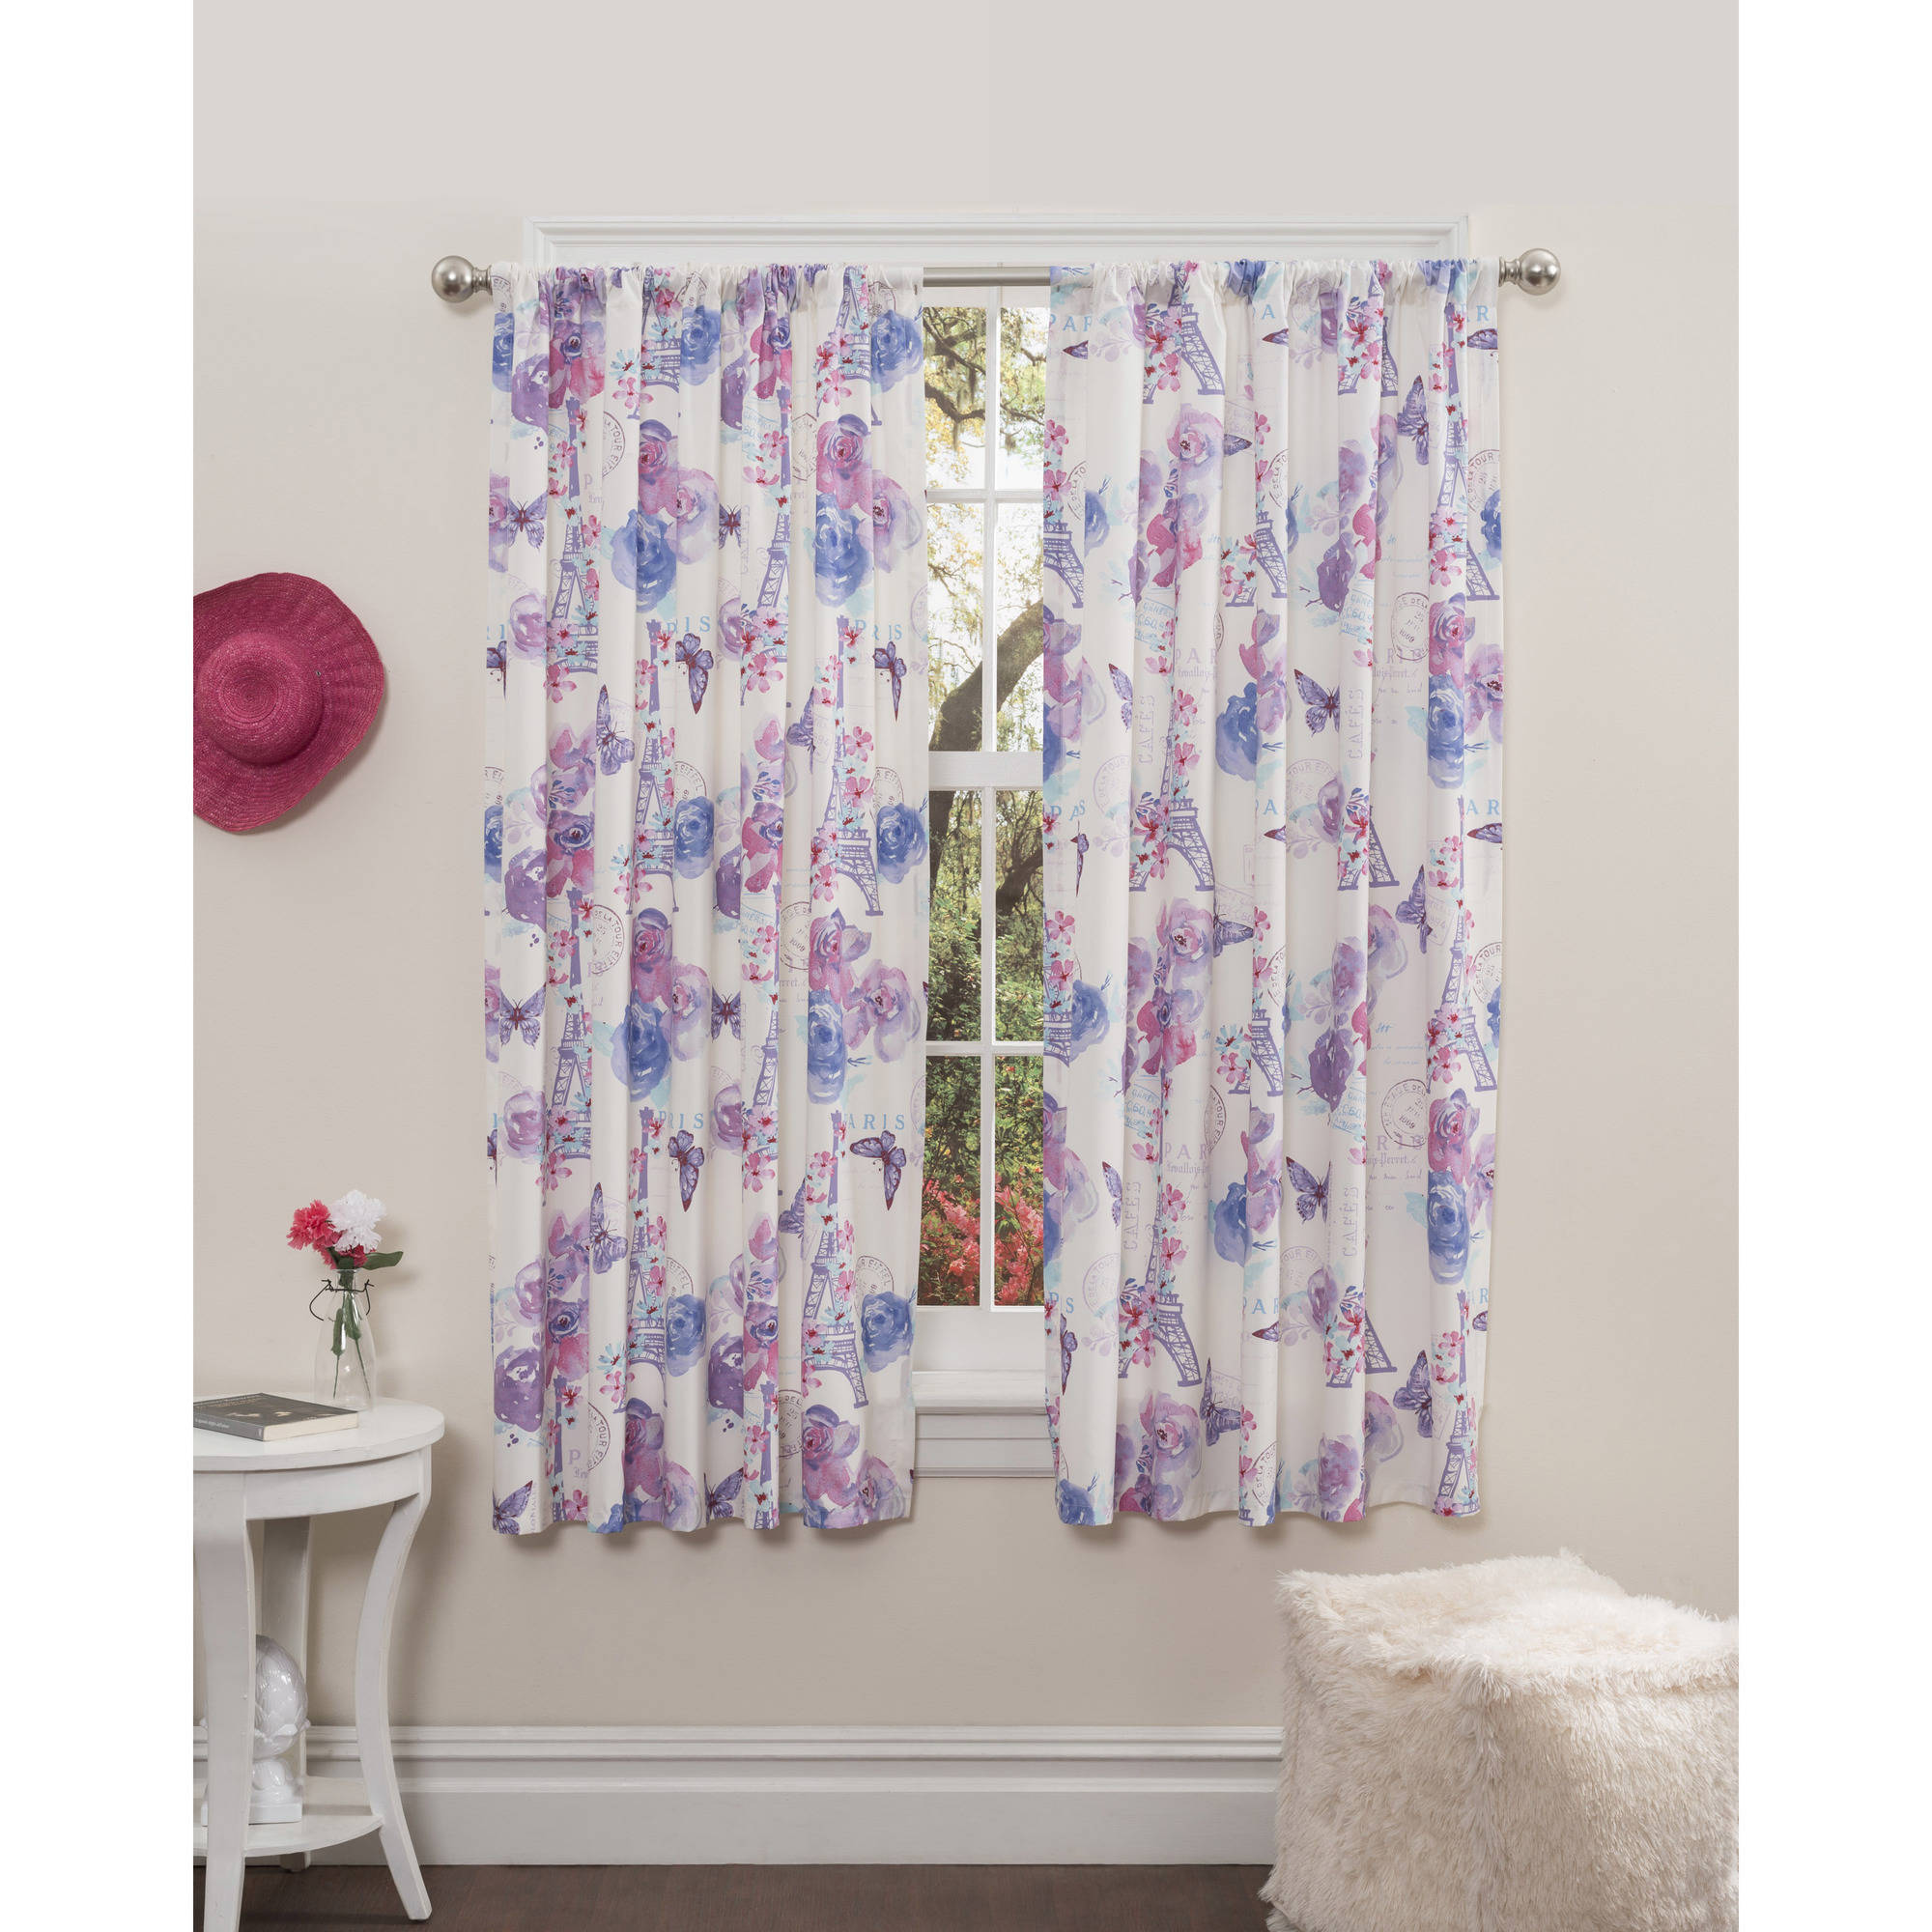 Mainstays Paris-Lavender Girls Bedroom Curtains, Set of Two